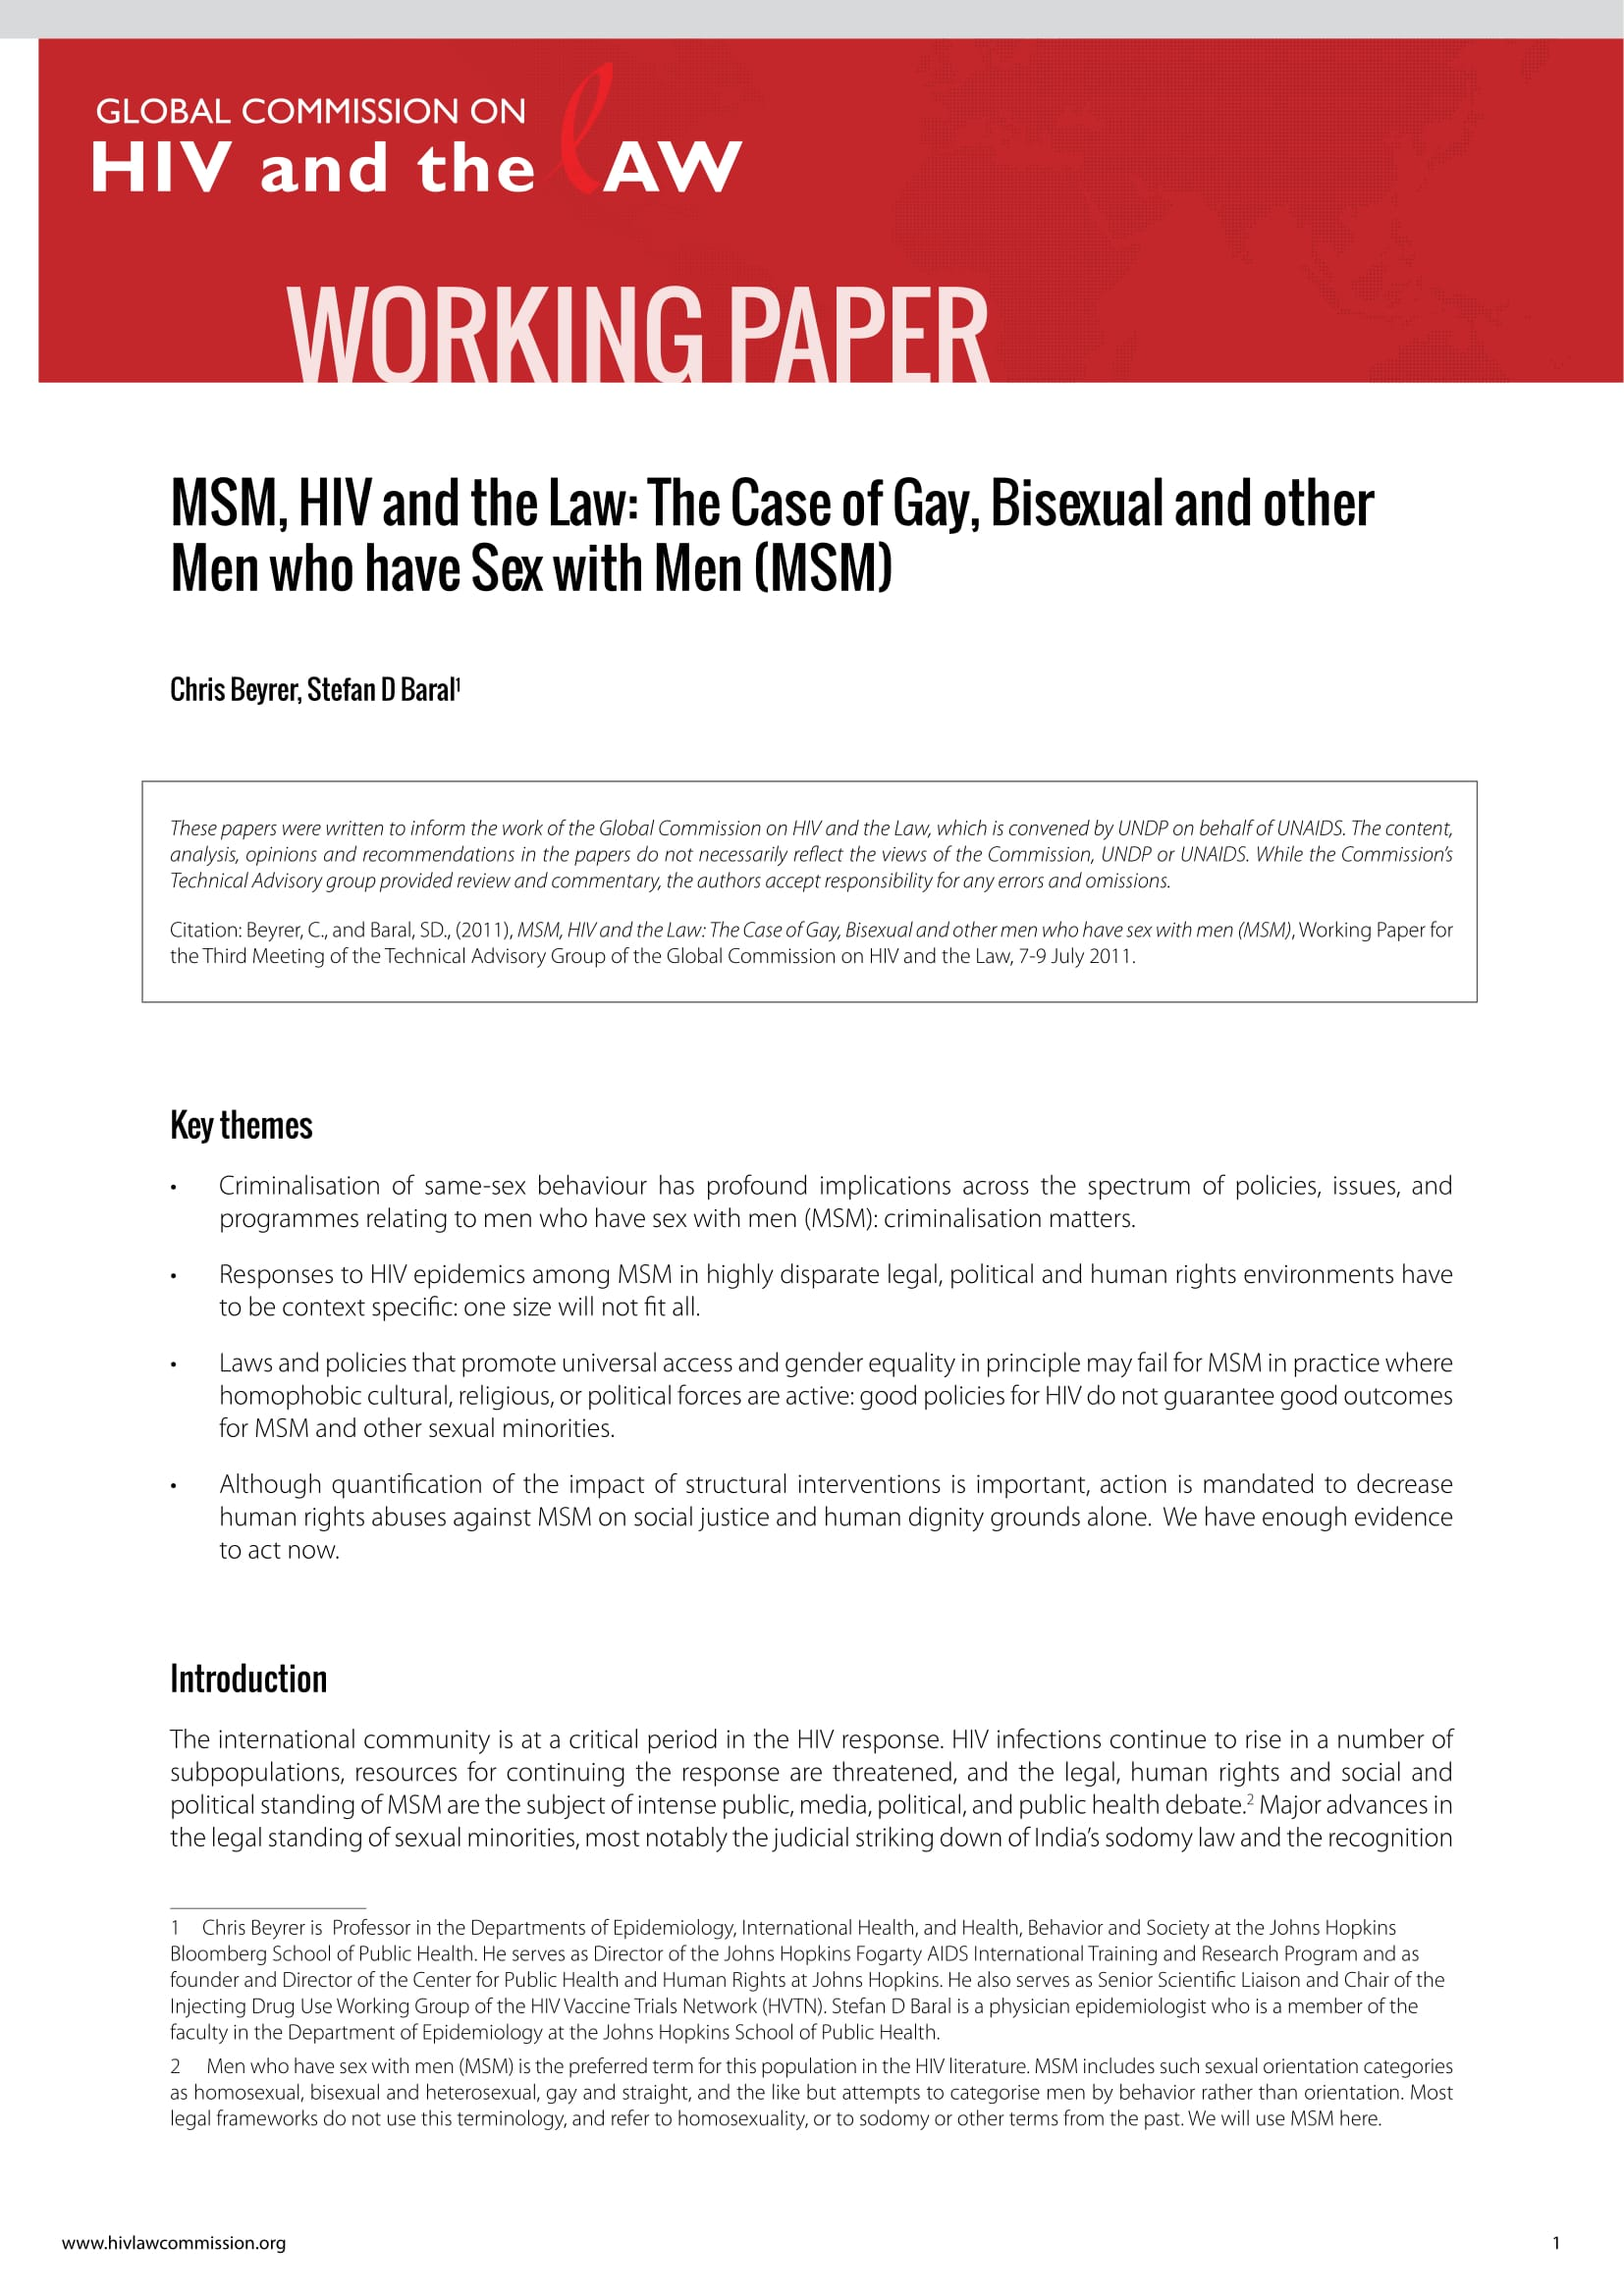 MSM, HIV and the Law: The Case of Gay, Bisexual and other men who have sex with men (MSM)